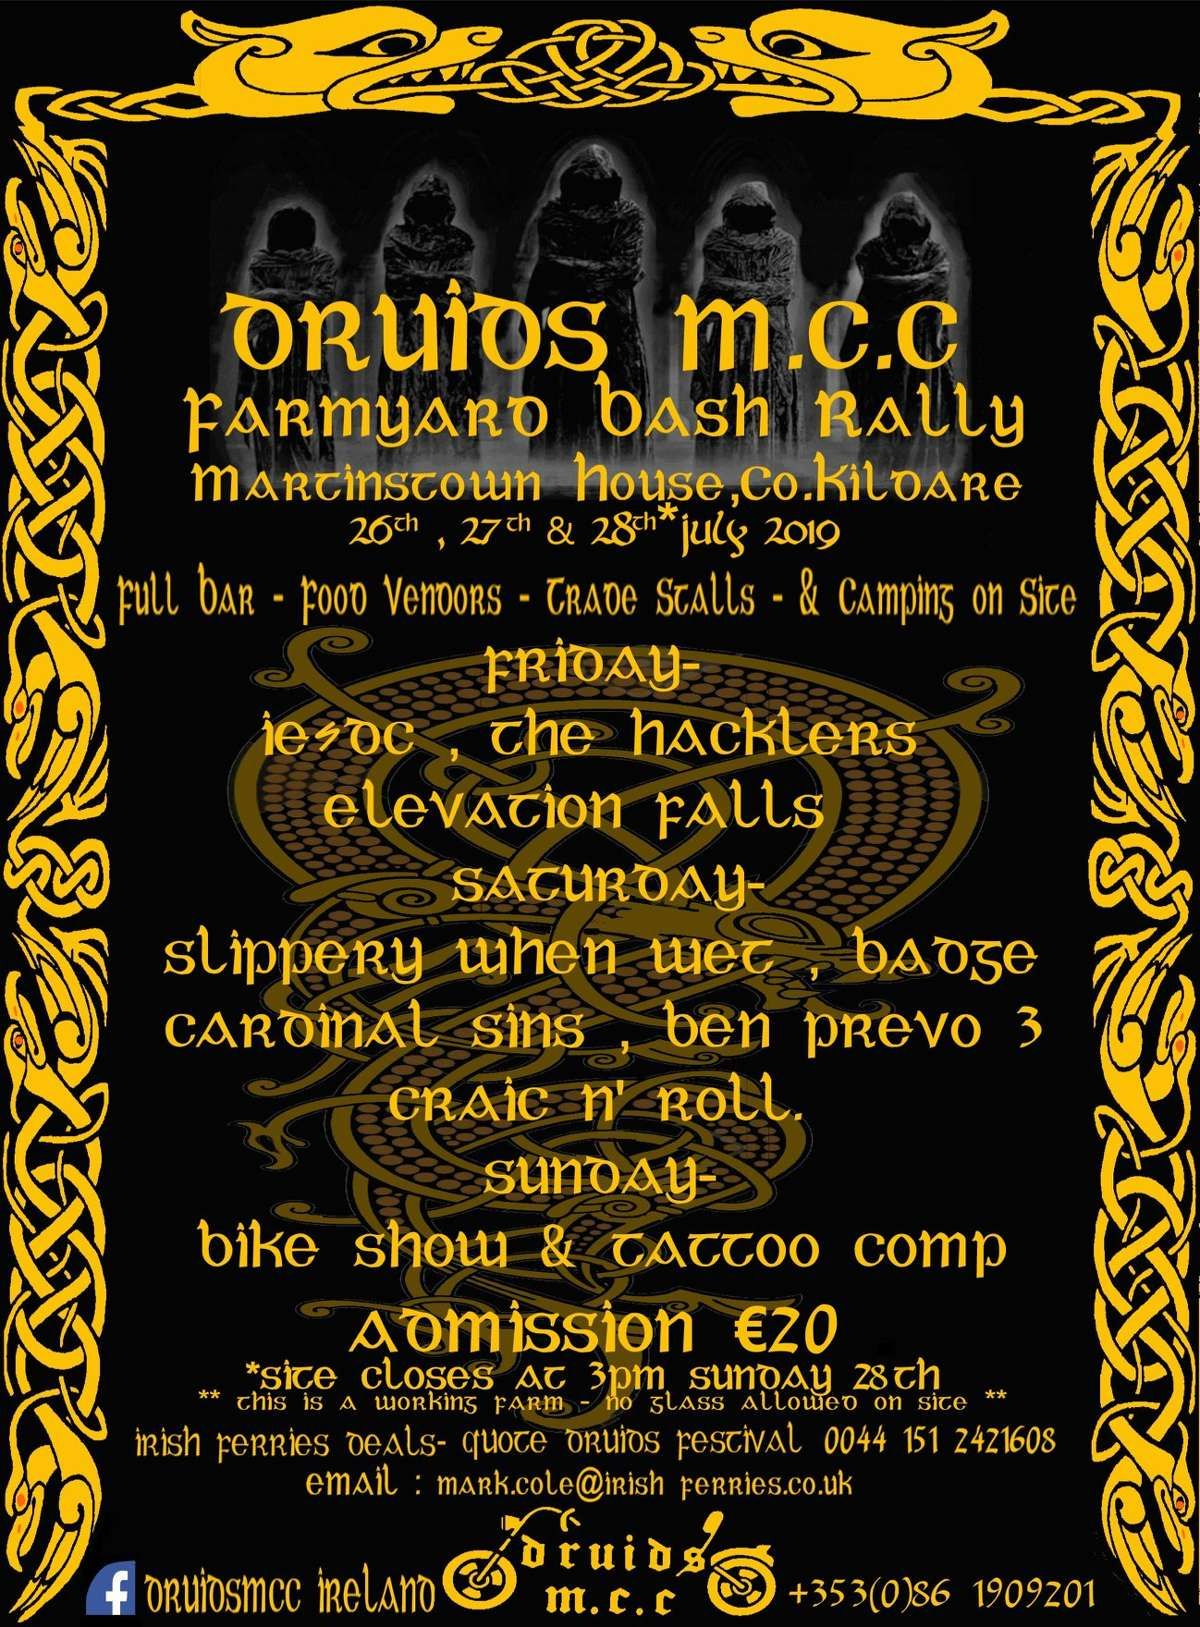 Druids M.C.C Farmyard Bash 2019 @ Martinstown House